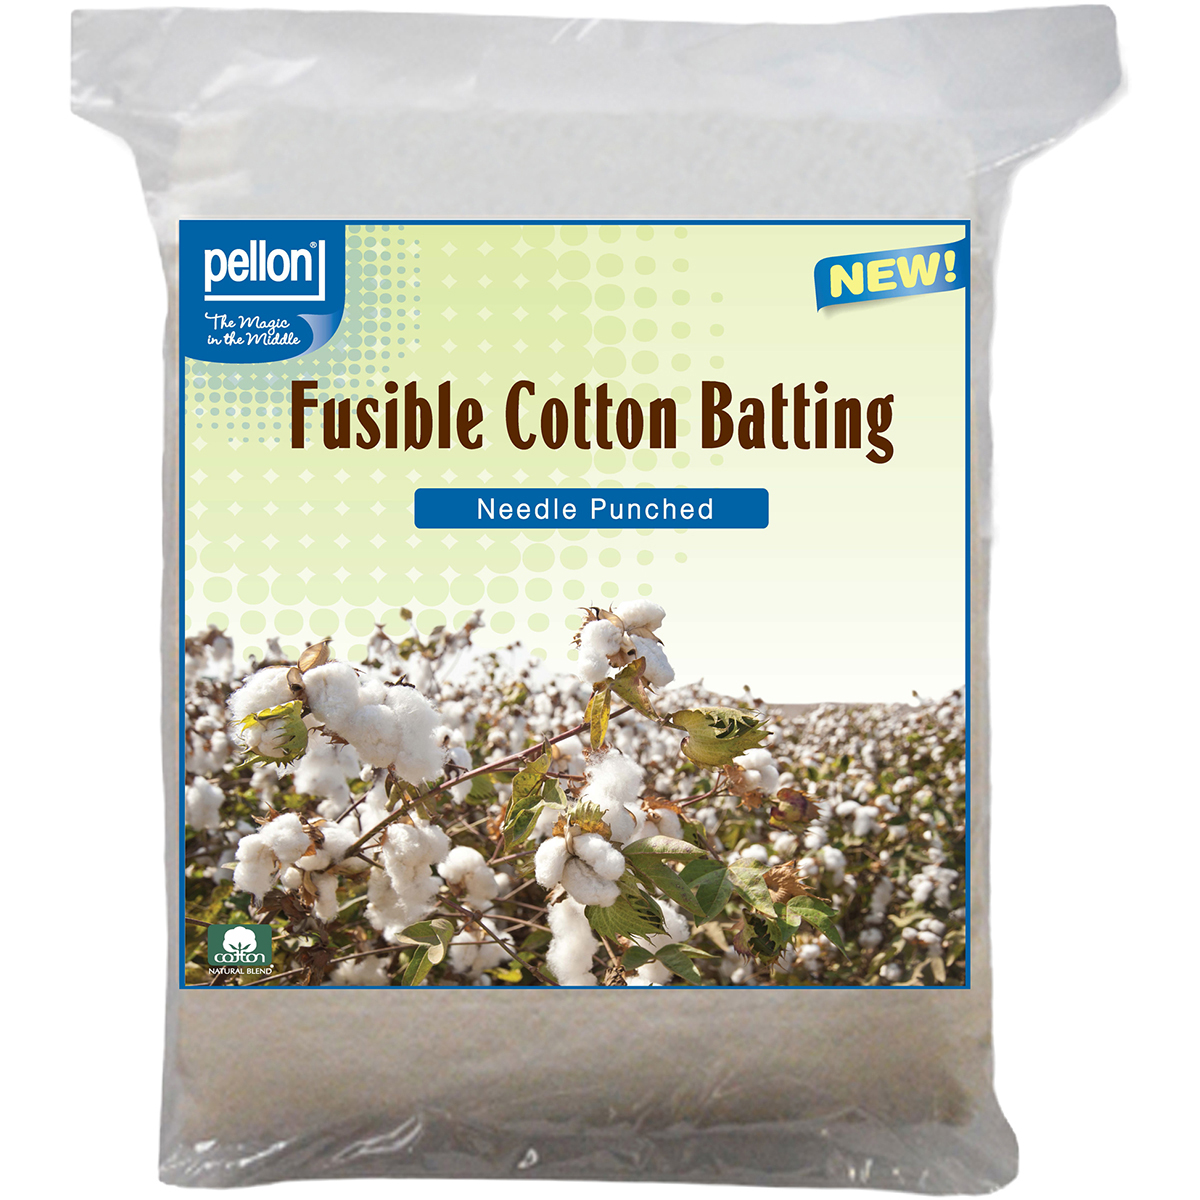 "Pellon Needle Punched Fusible Cotton Batting, 45"" x 60"""